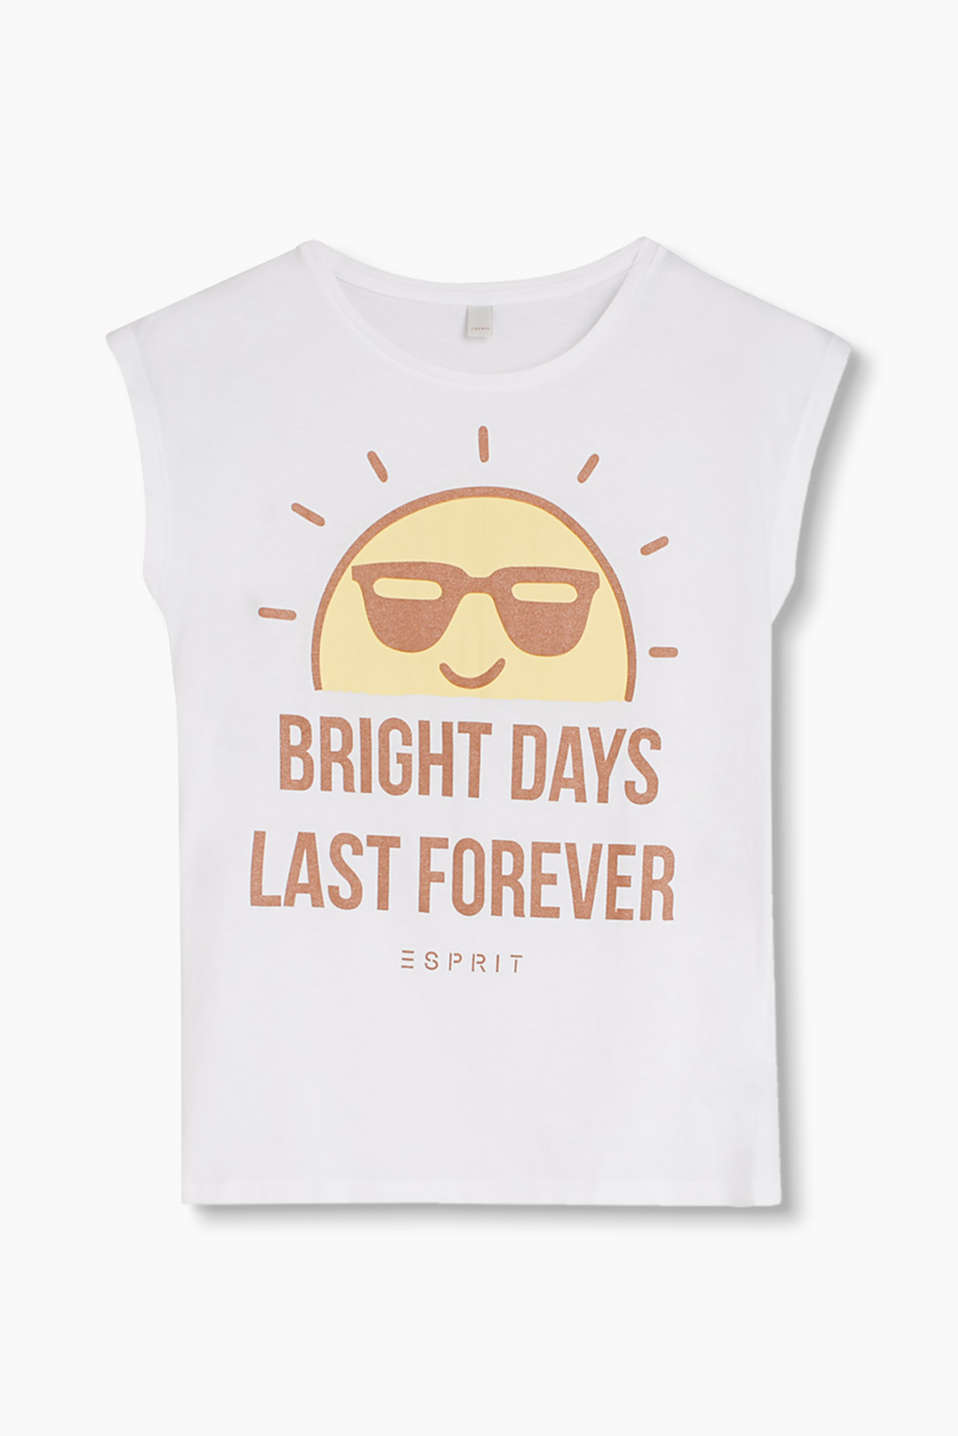 BRIGHT DAYS LAST FOREVER – T-shirt in cotton jersey with a glittery statement print